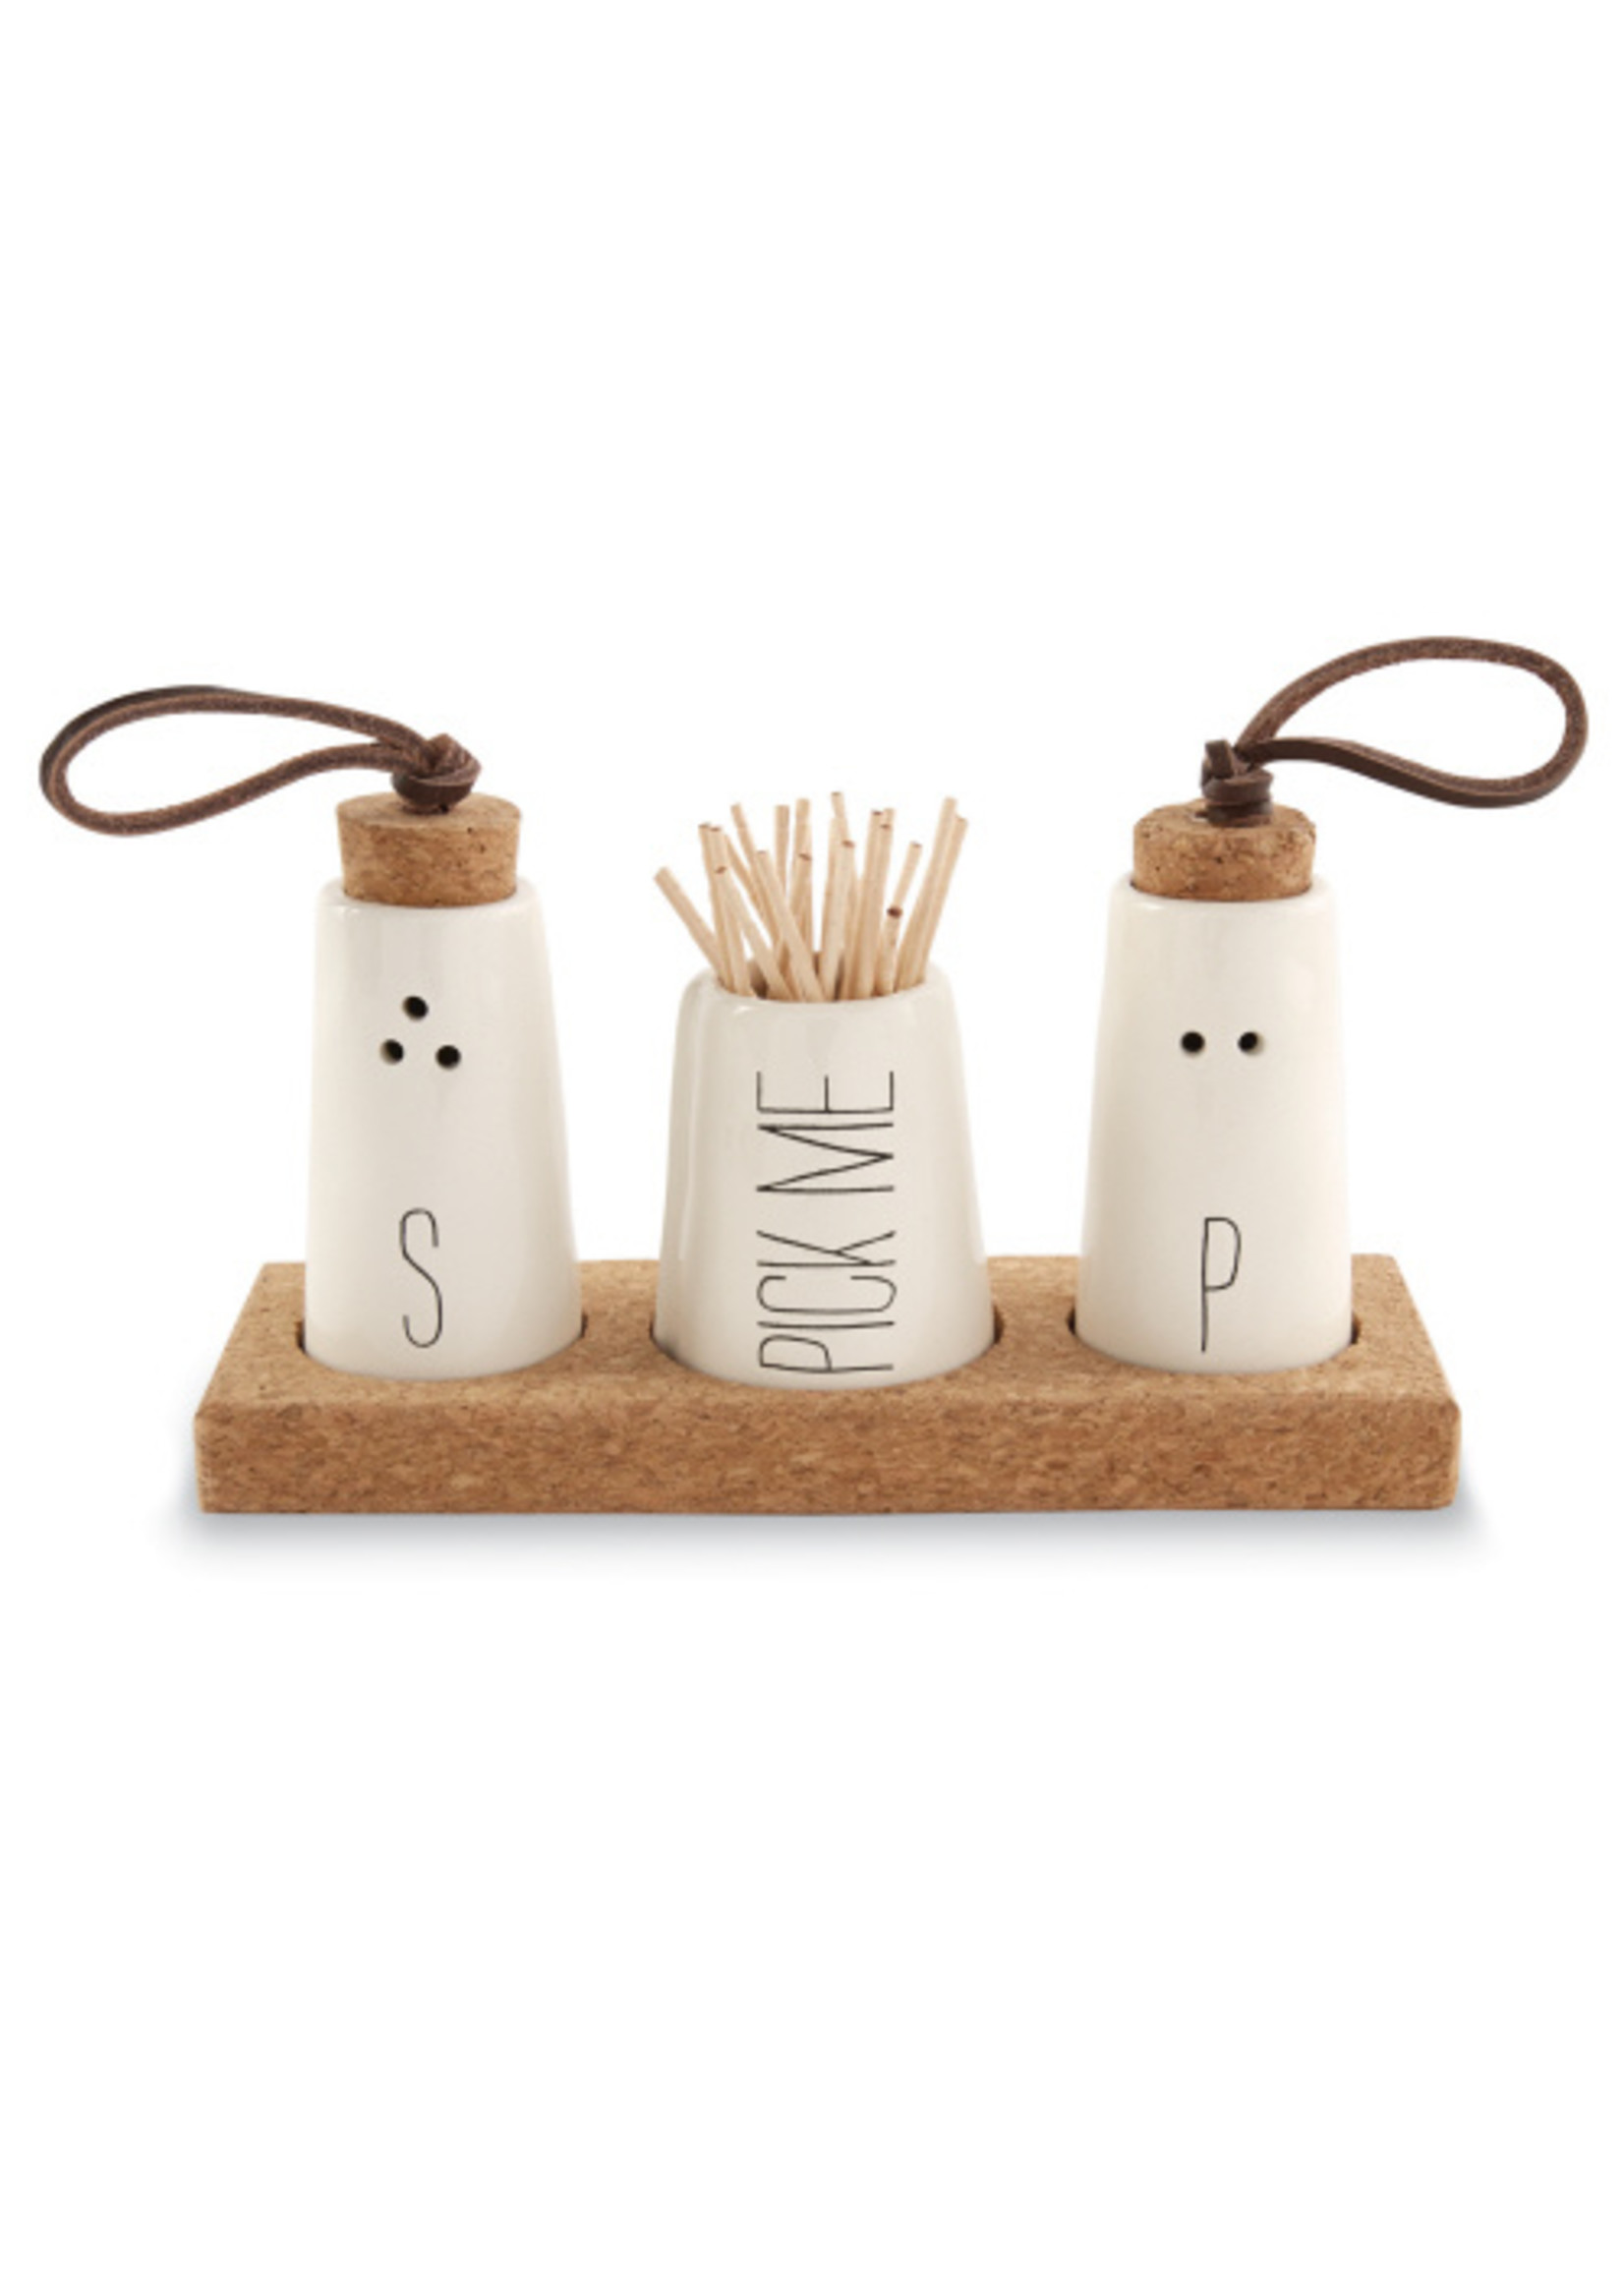 Salt and Pepper and Toothpick Holder